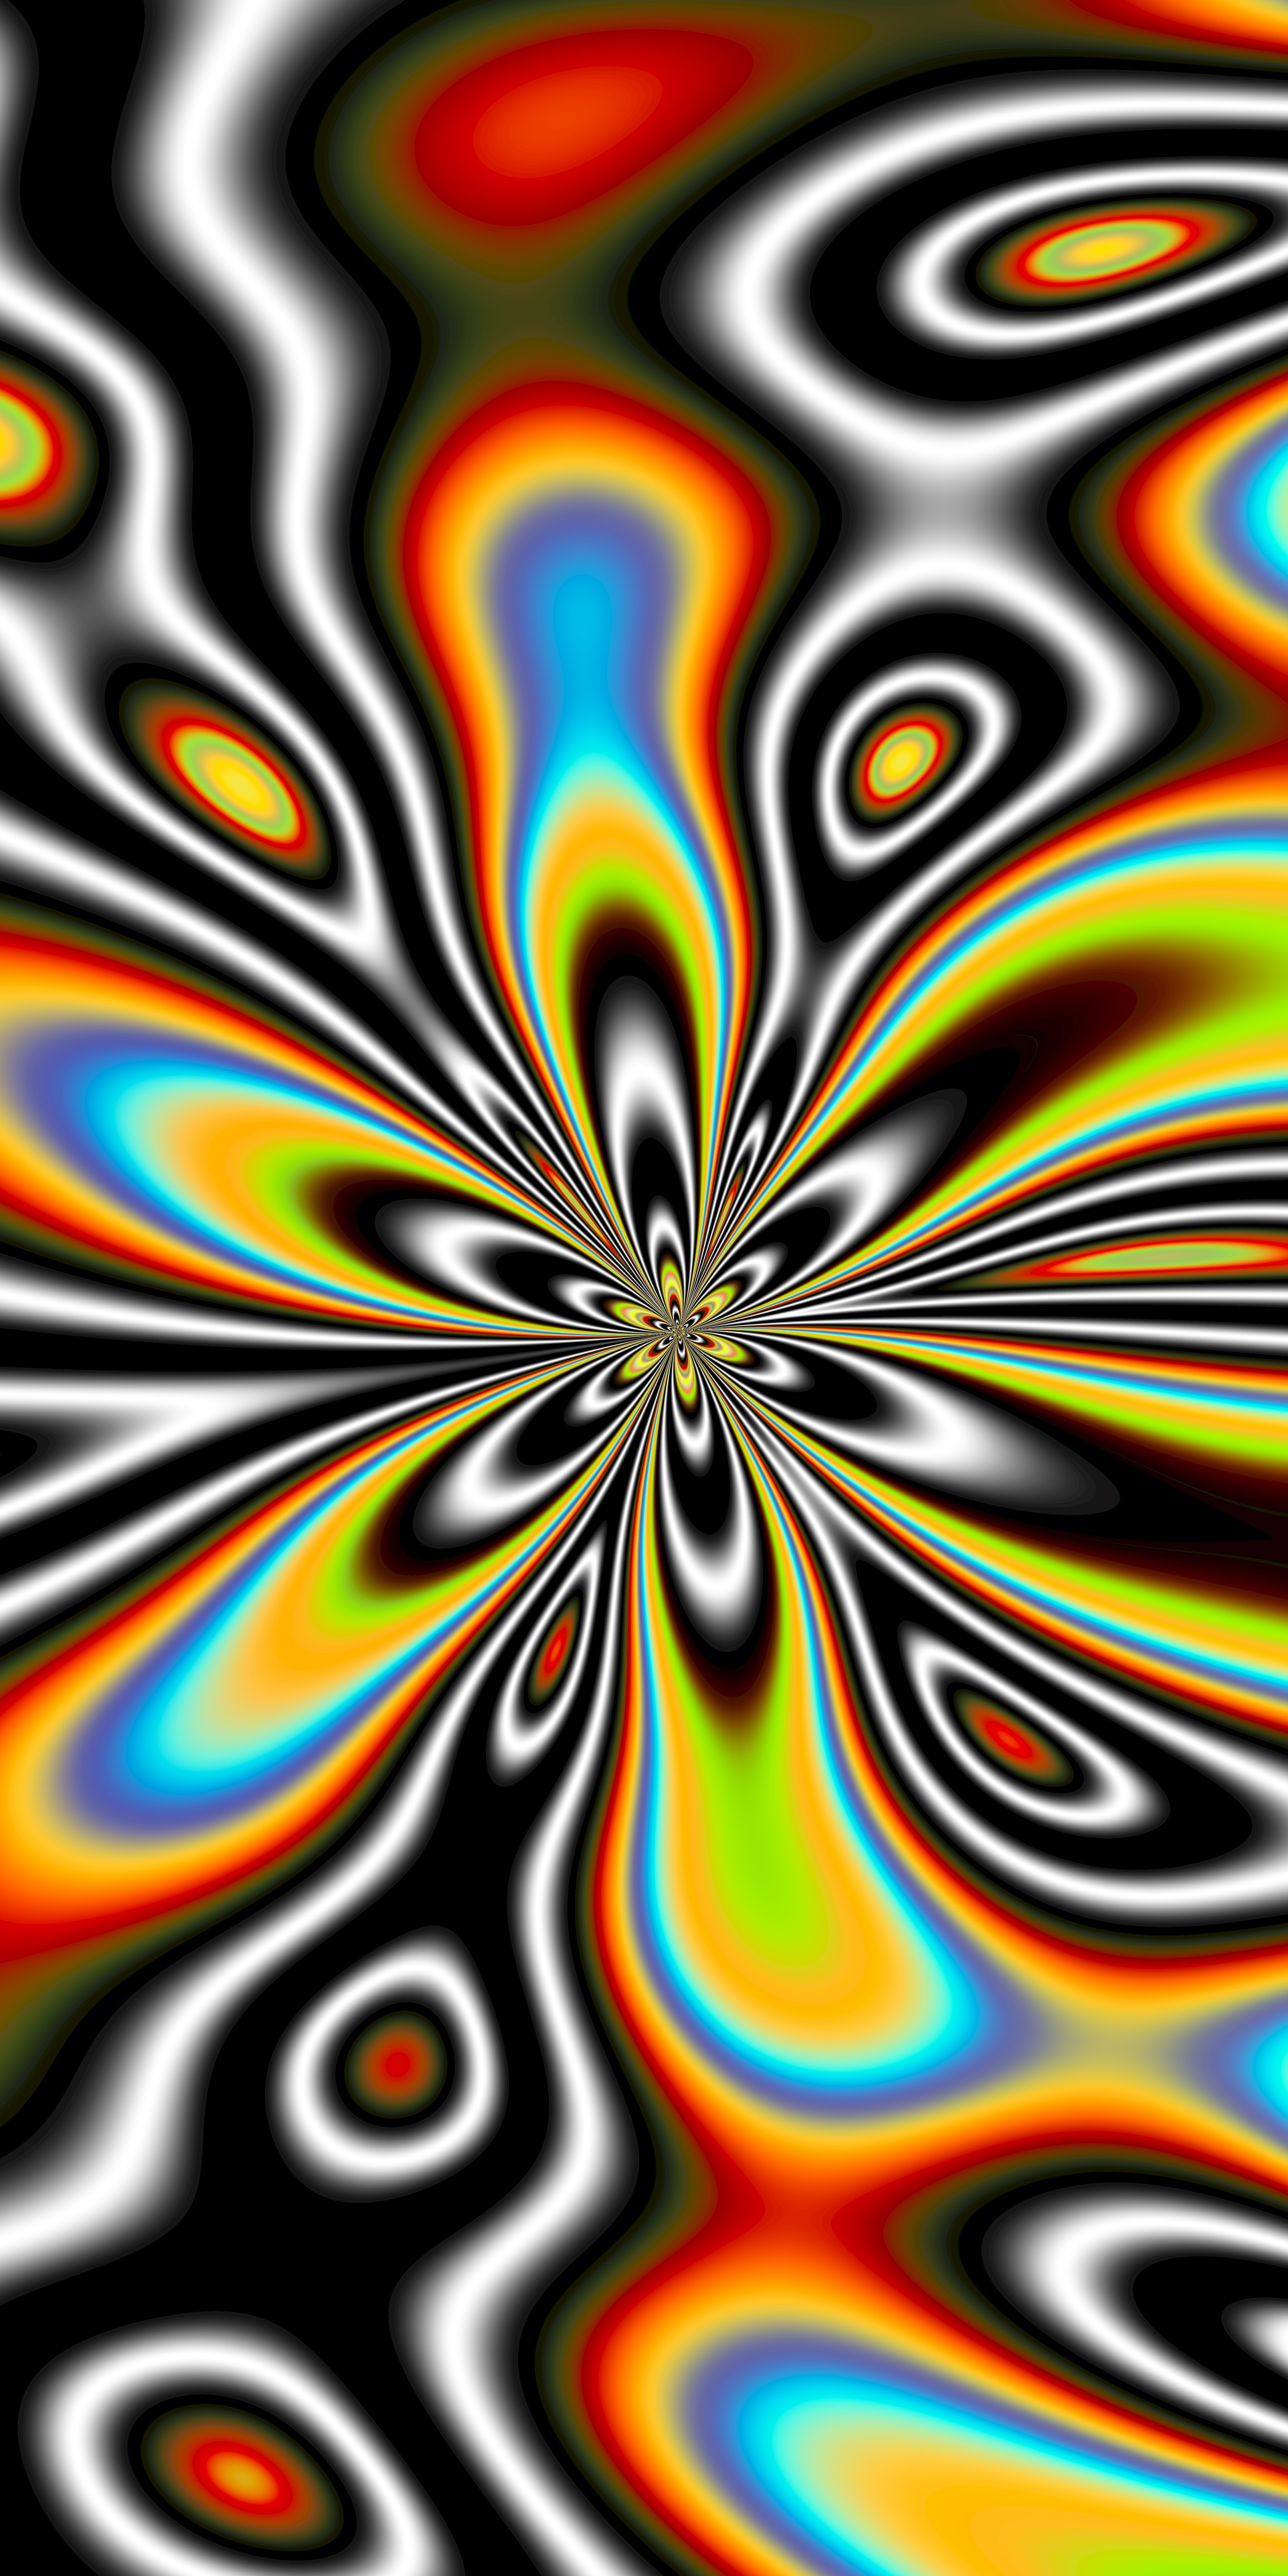 53595 download wallpaper Abstract, Pattern, Fractal, Optical Illusion, Immersion screensavers and pictures for free